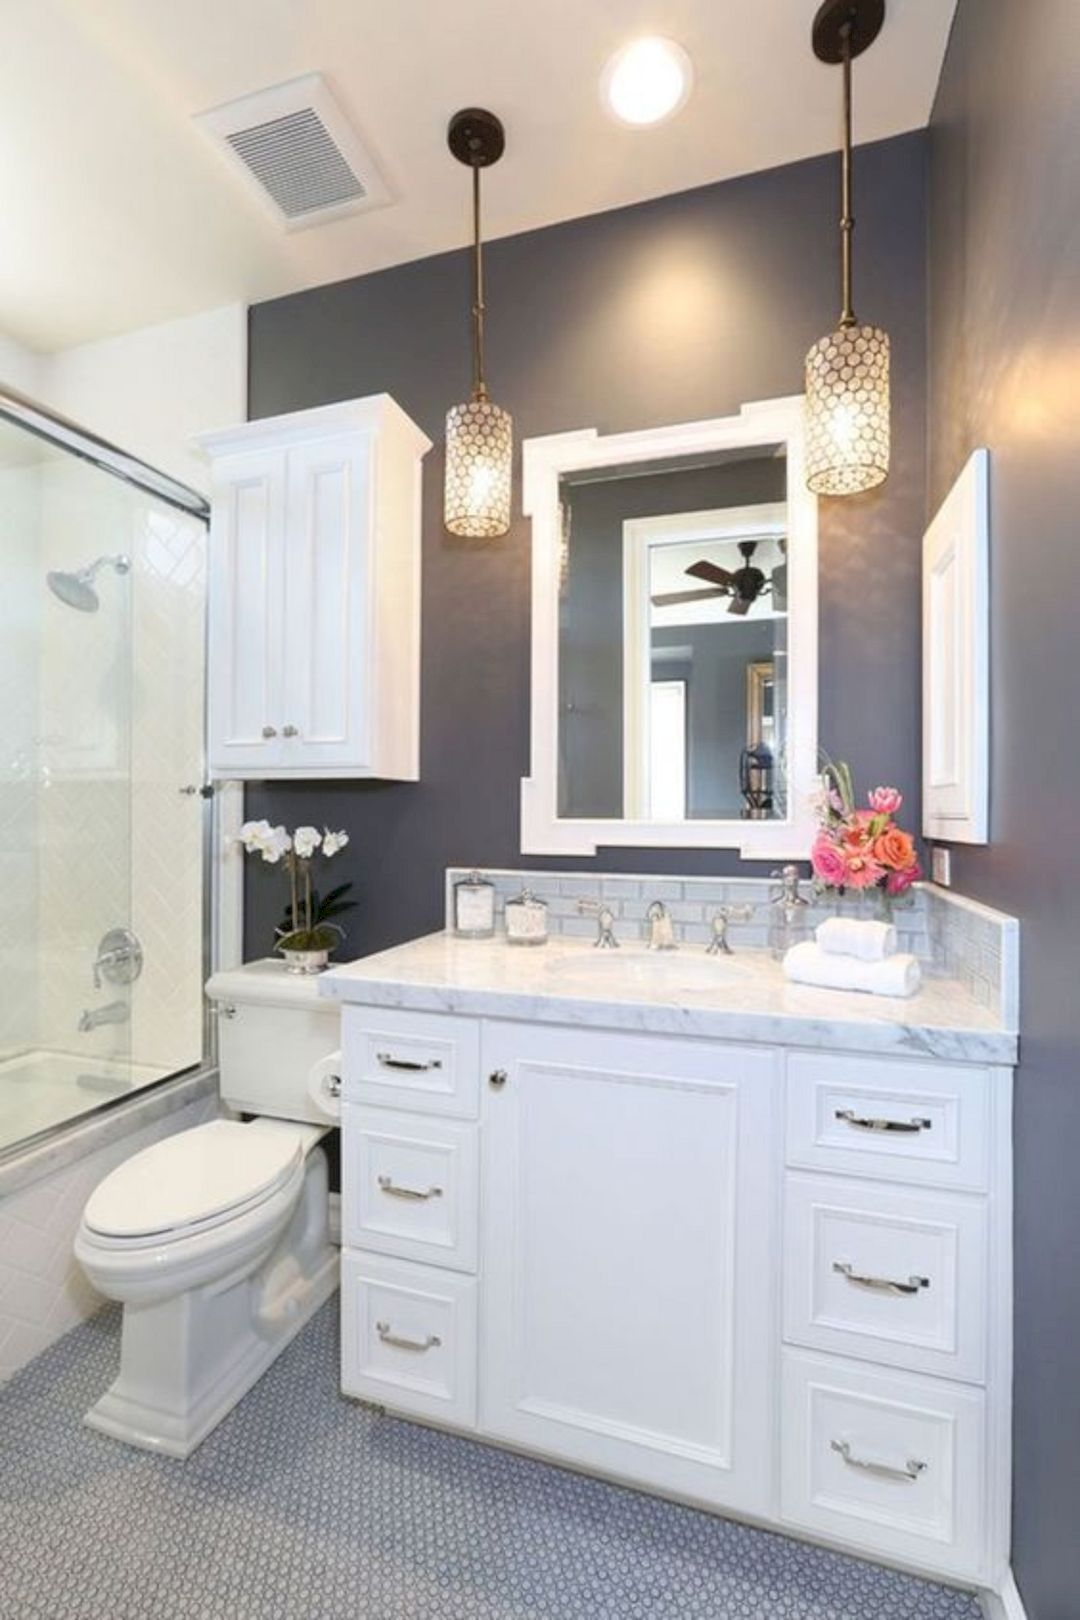 16 Small Bathroom Renovation Ideas | Small Space Living & Design ...